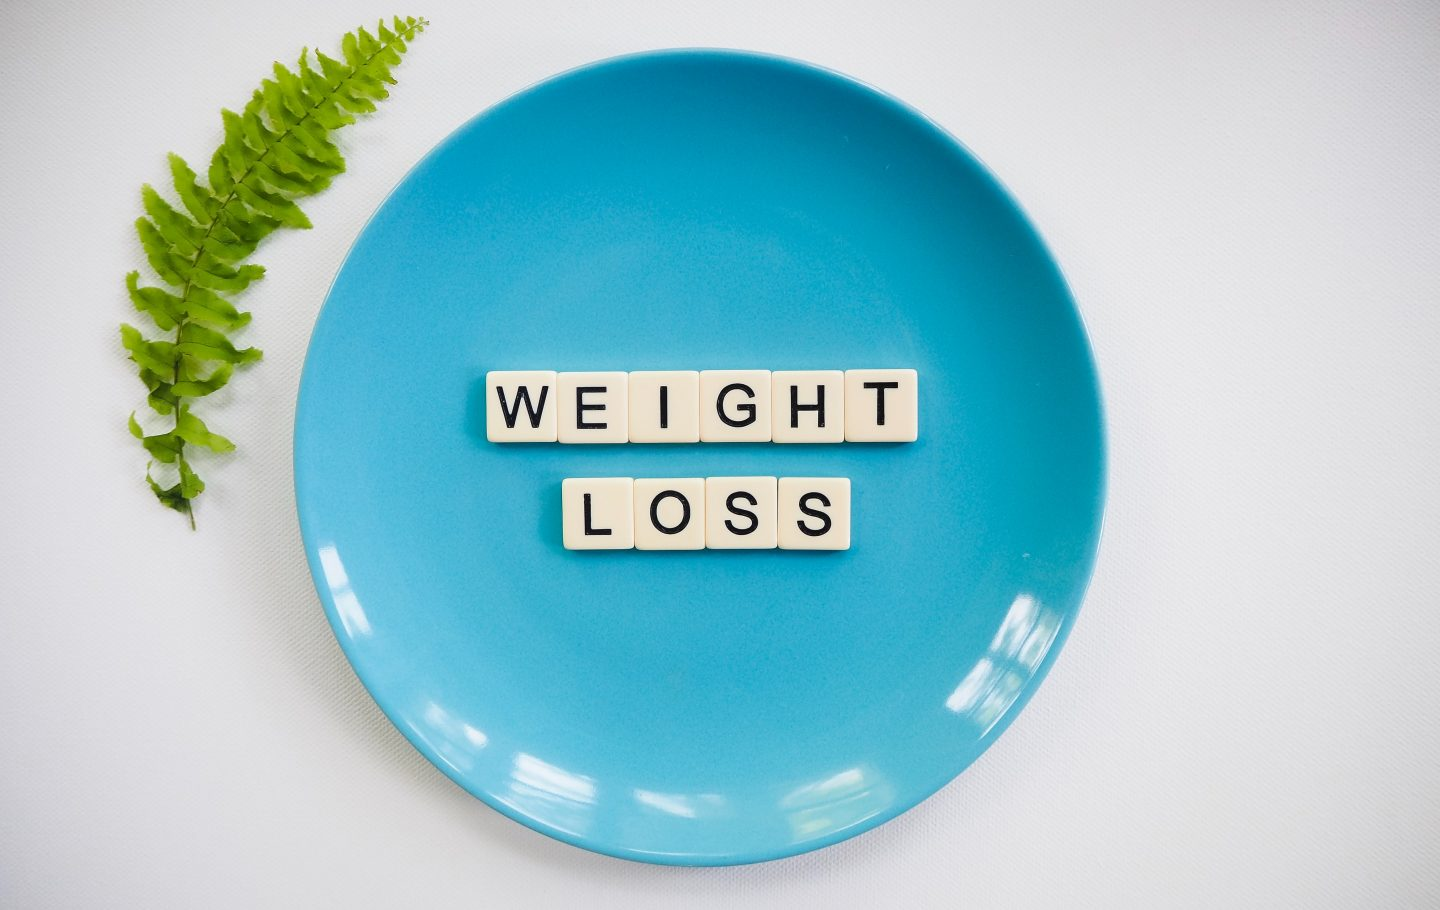 10 Common Weight Loss Mistakes I Hear All The Time